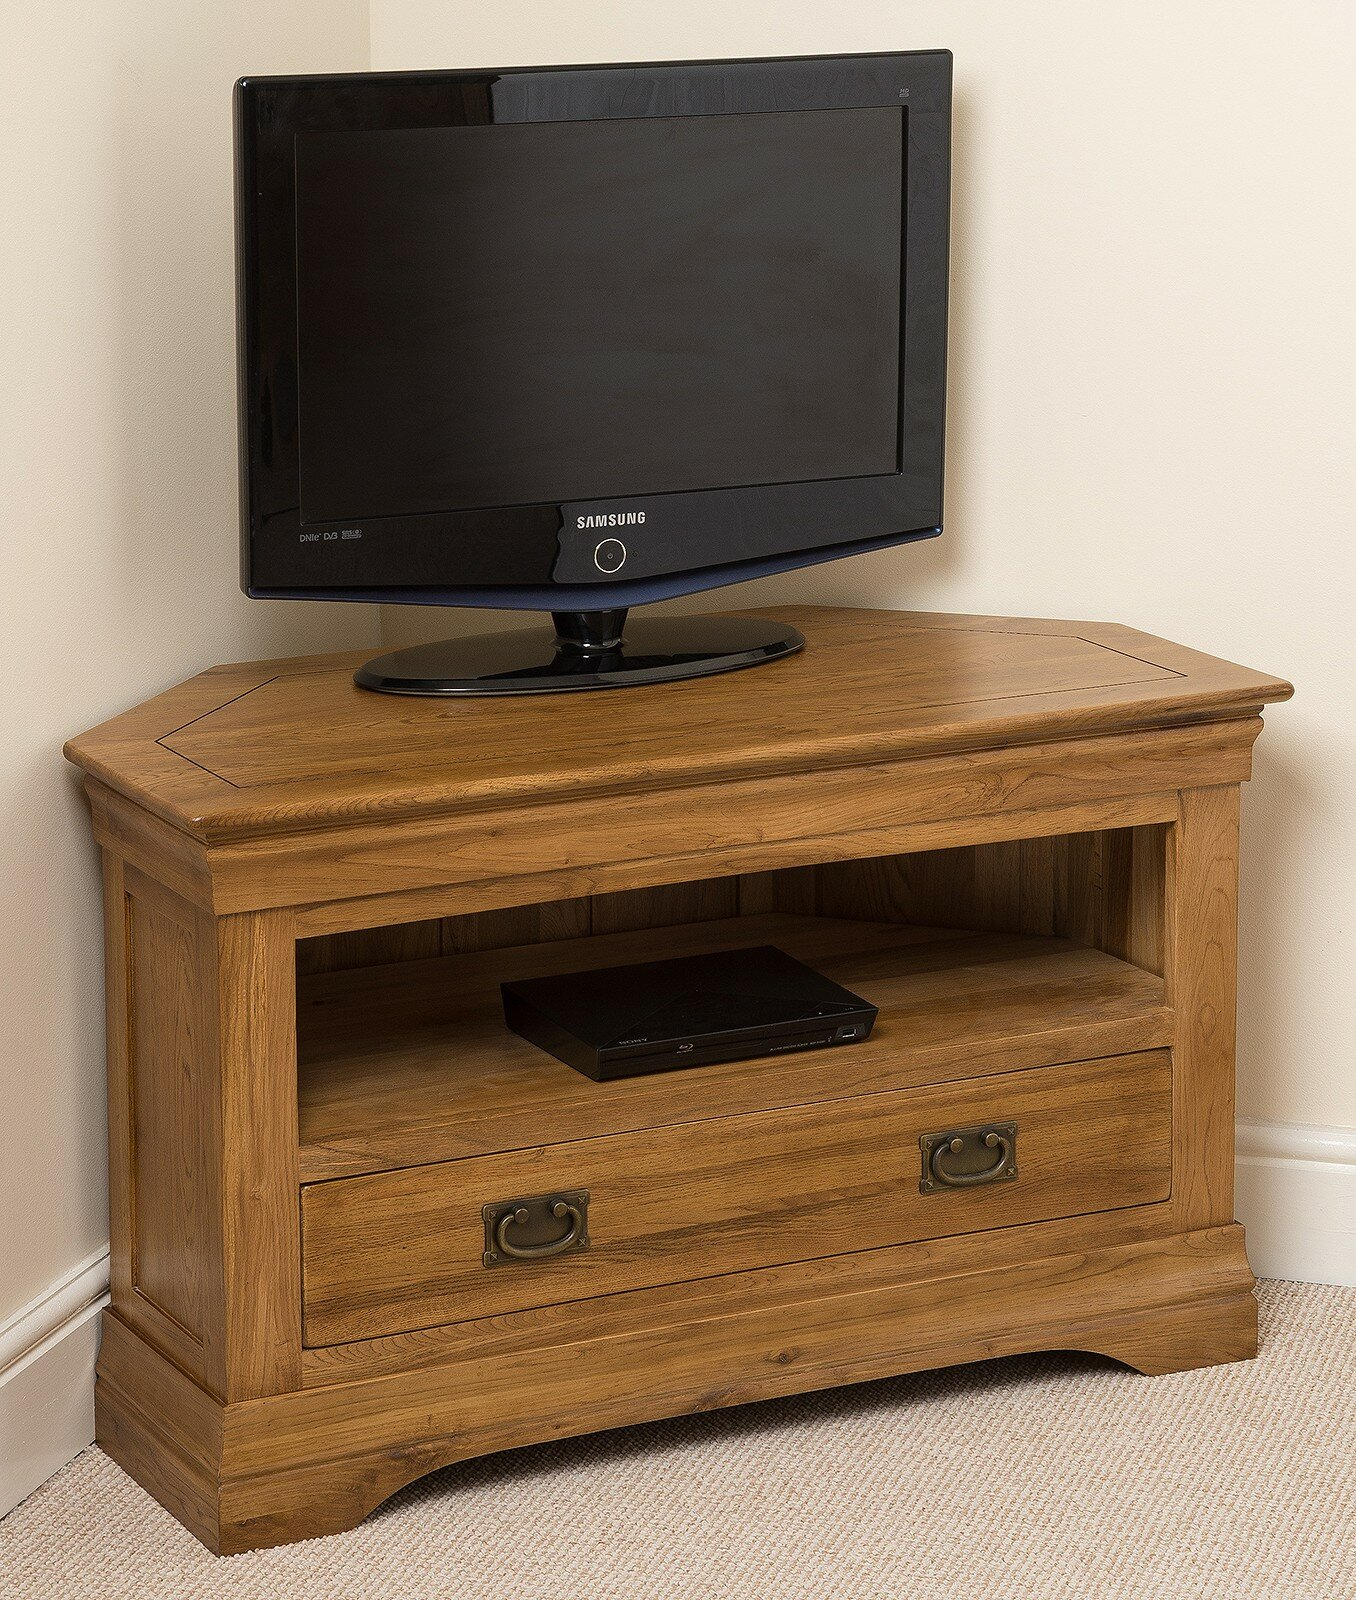 Alpen home hobart tv stand for tvs up to 40 wayfair co uk